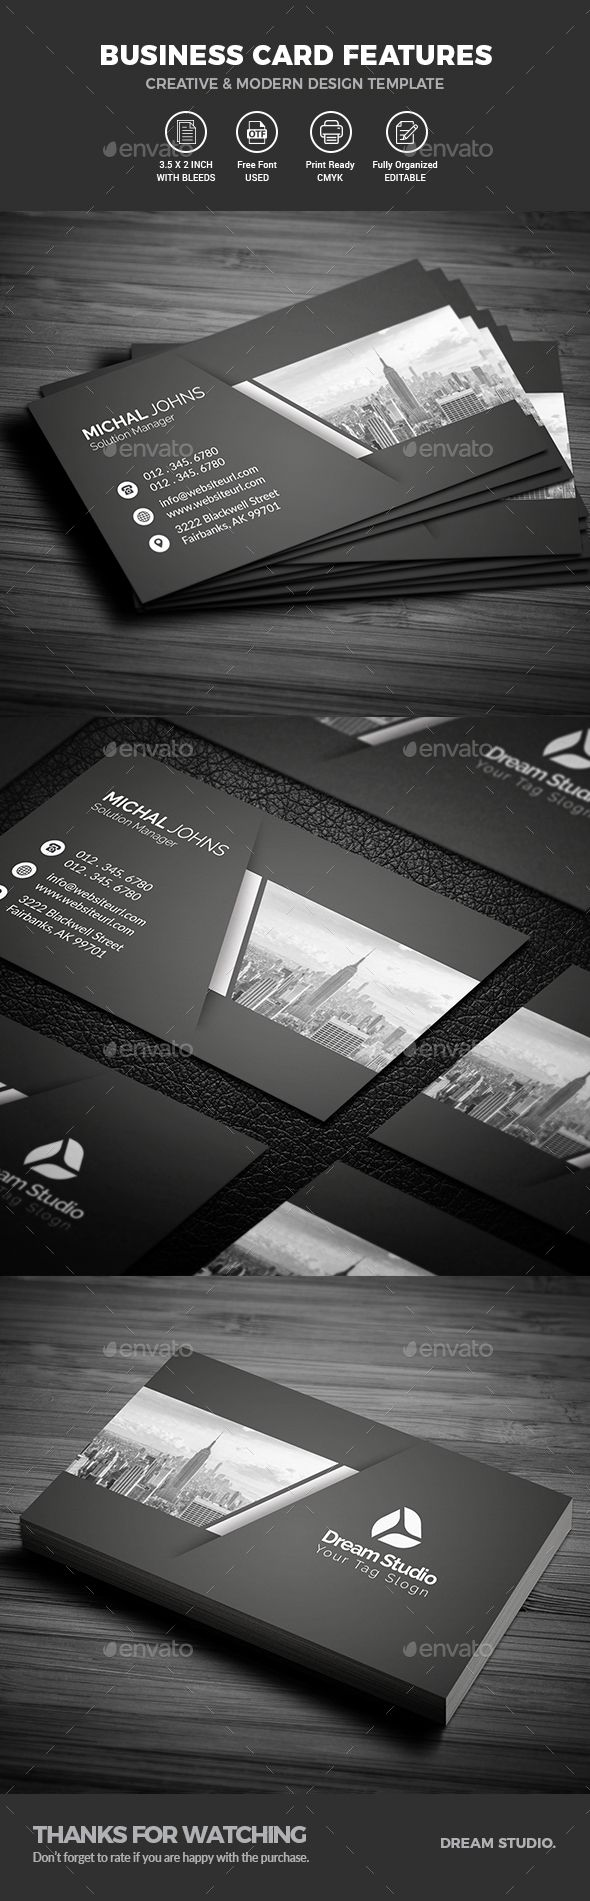 Business Cards - #Business Cards Print #Templates Download here:  https://graphicriver.net/item/business-cards/20122227?ref=alena994